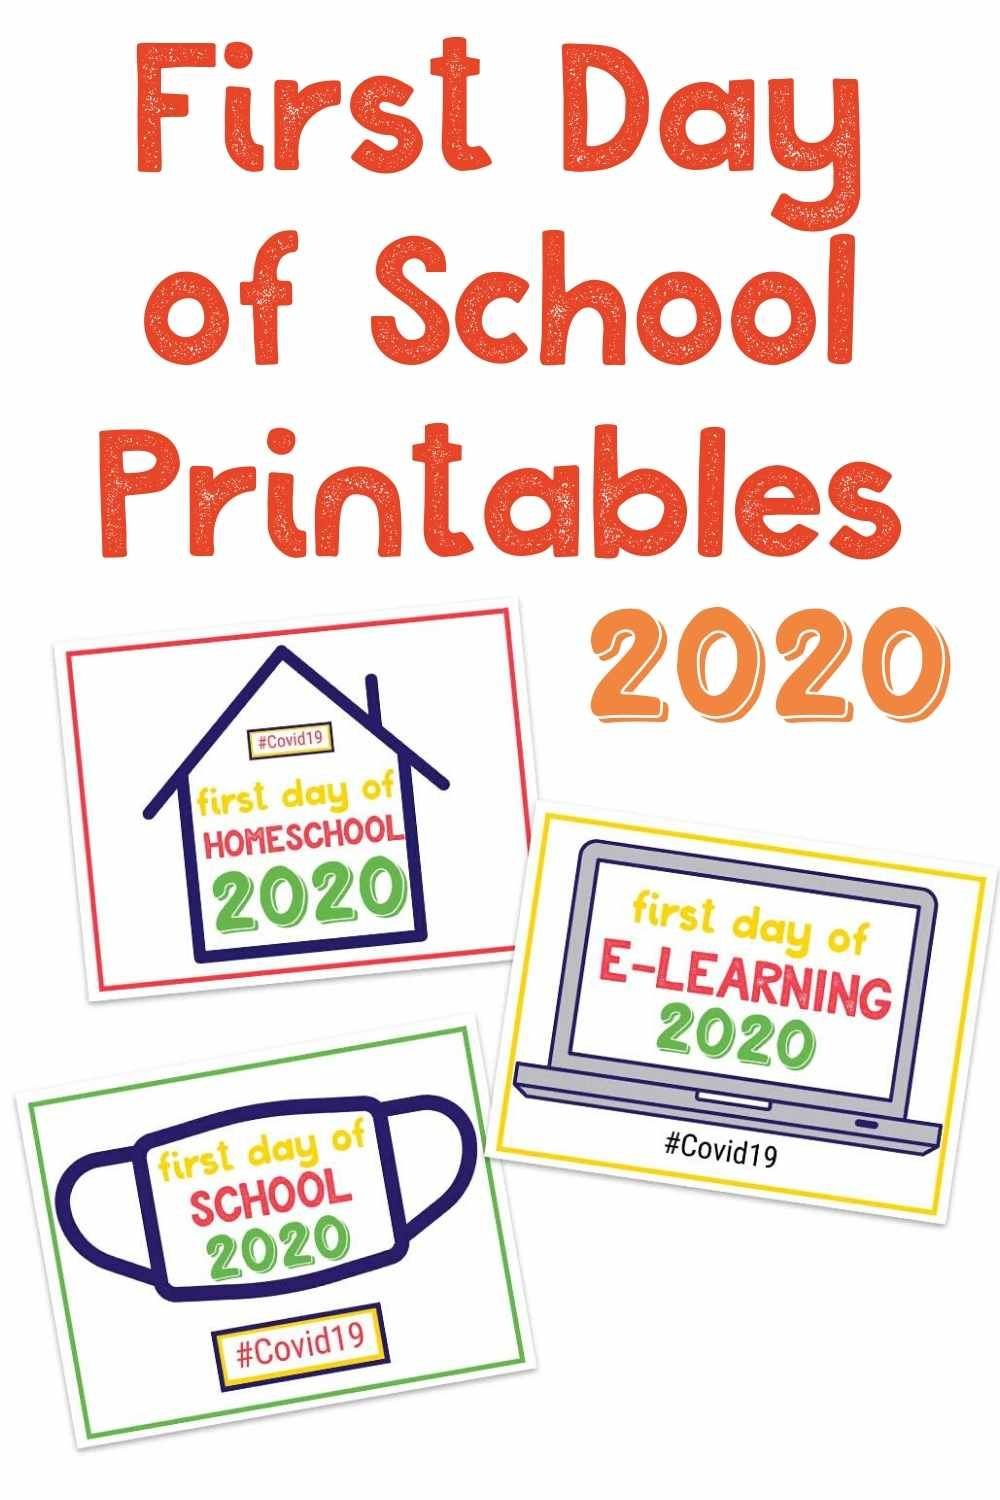 First Day Of School 2020 Printable Signs School Signs First Day Of School Free School Printables [ 1500 x 1000 Pixel ]